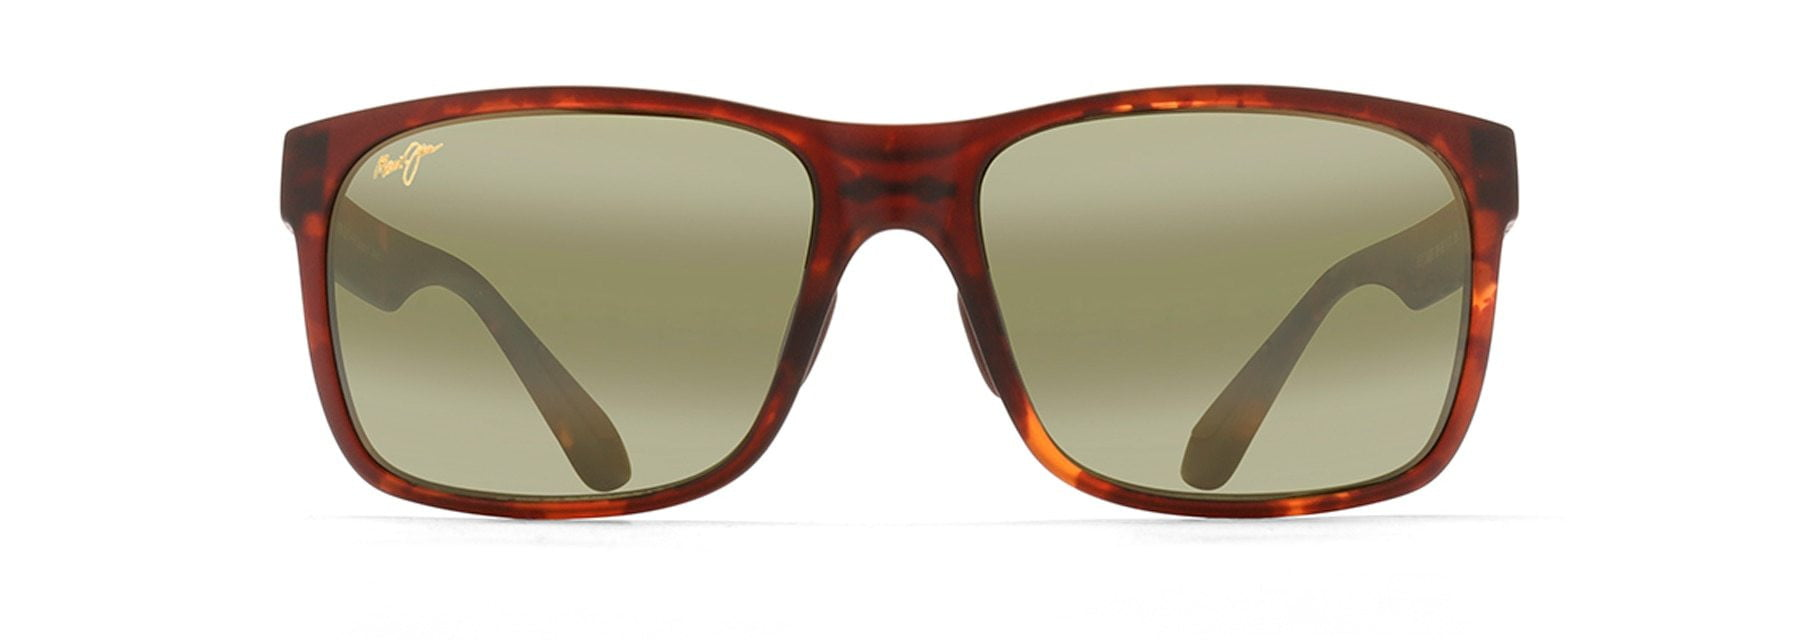 MyMaui Red Sands MM432-003 Sunglasses